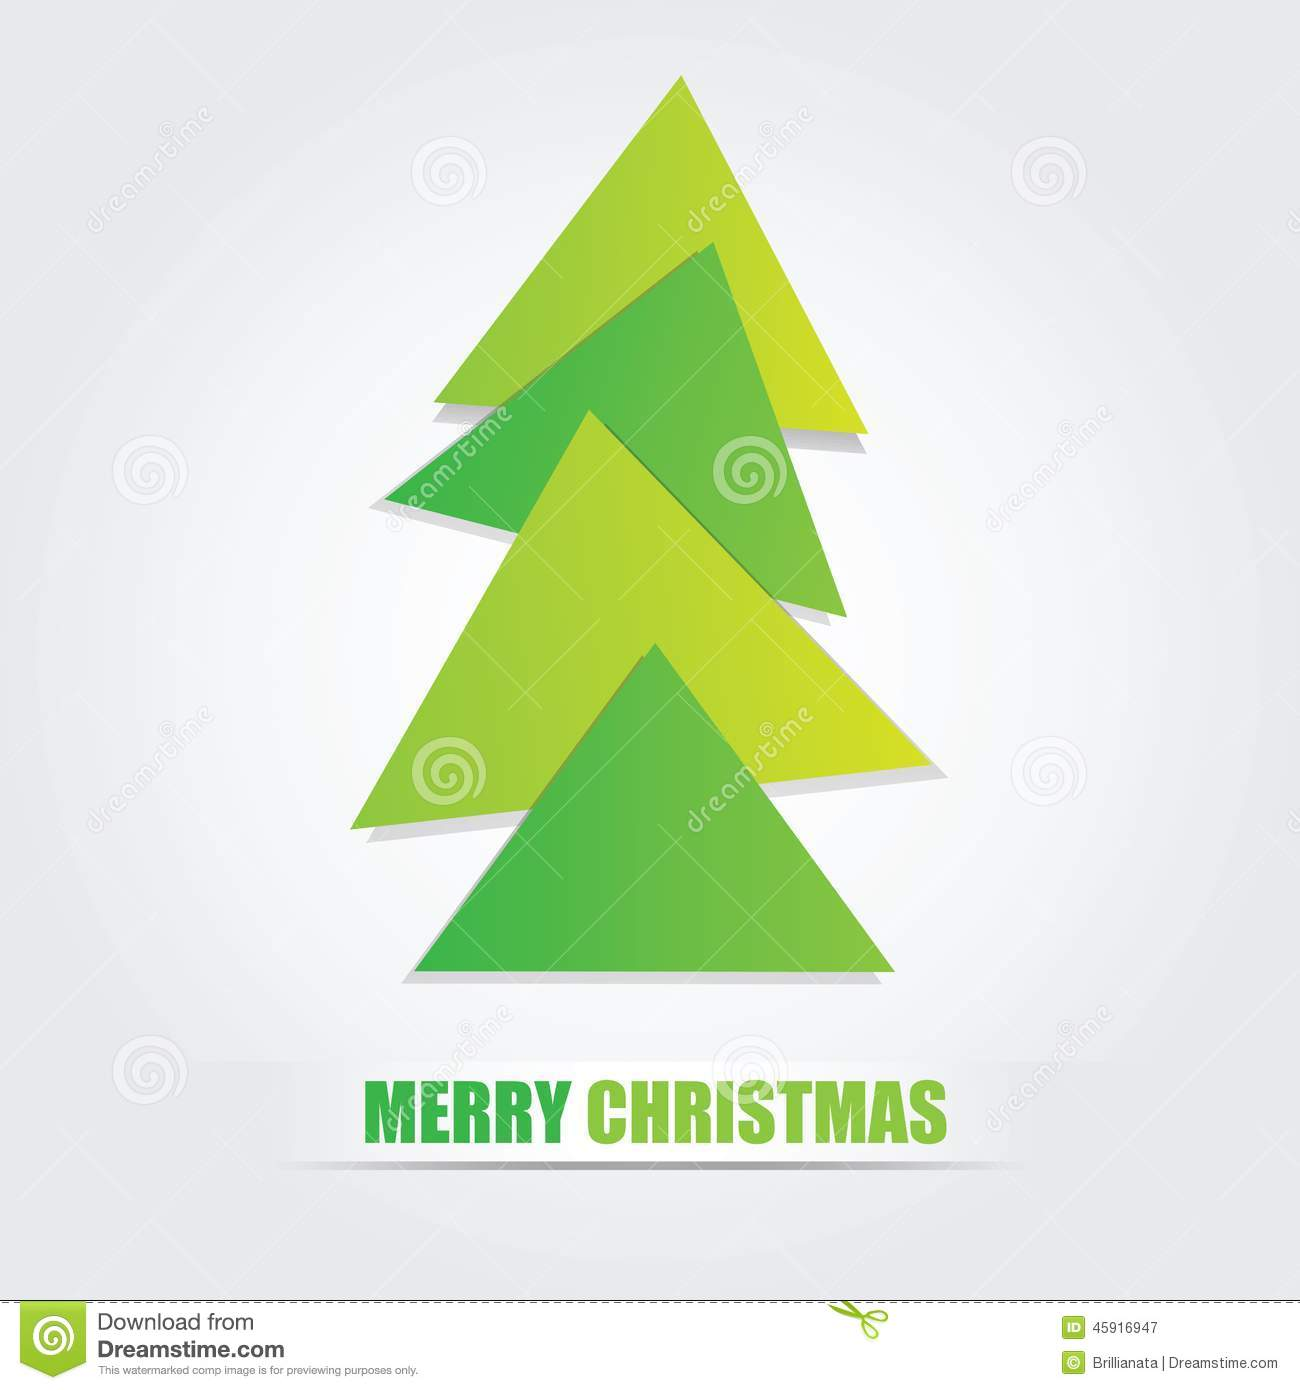 The Simple Geometric Triangle Form Christmas Tree Stock Vector ...